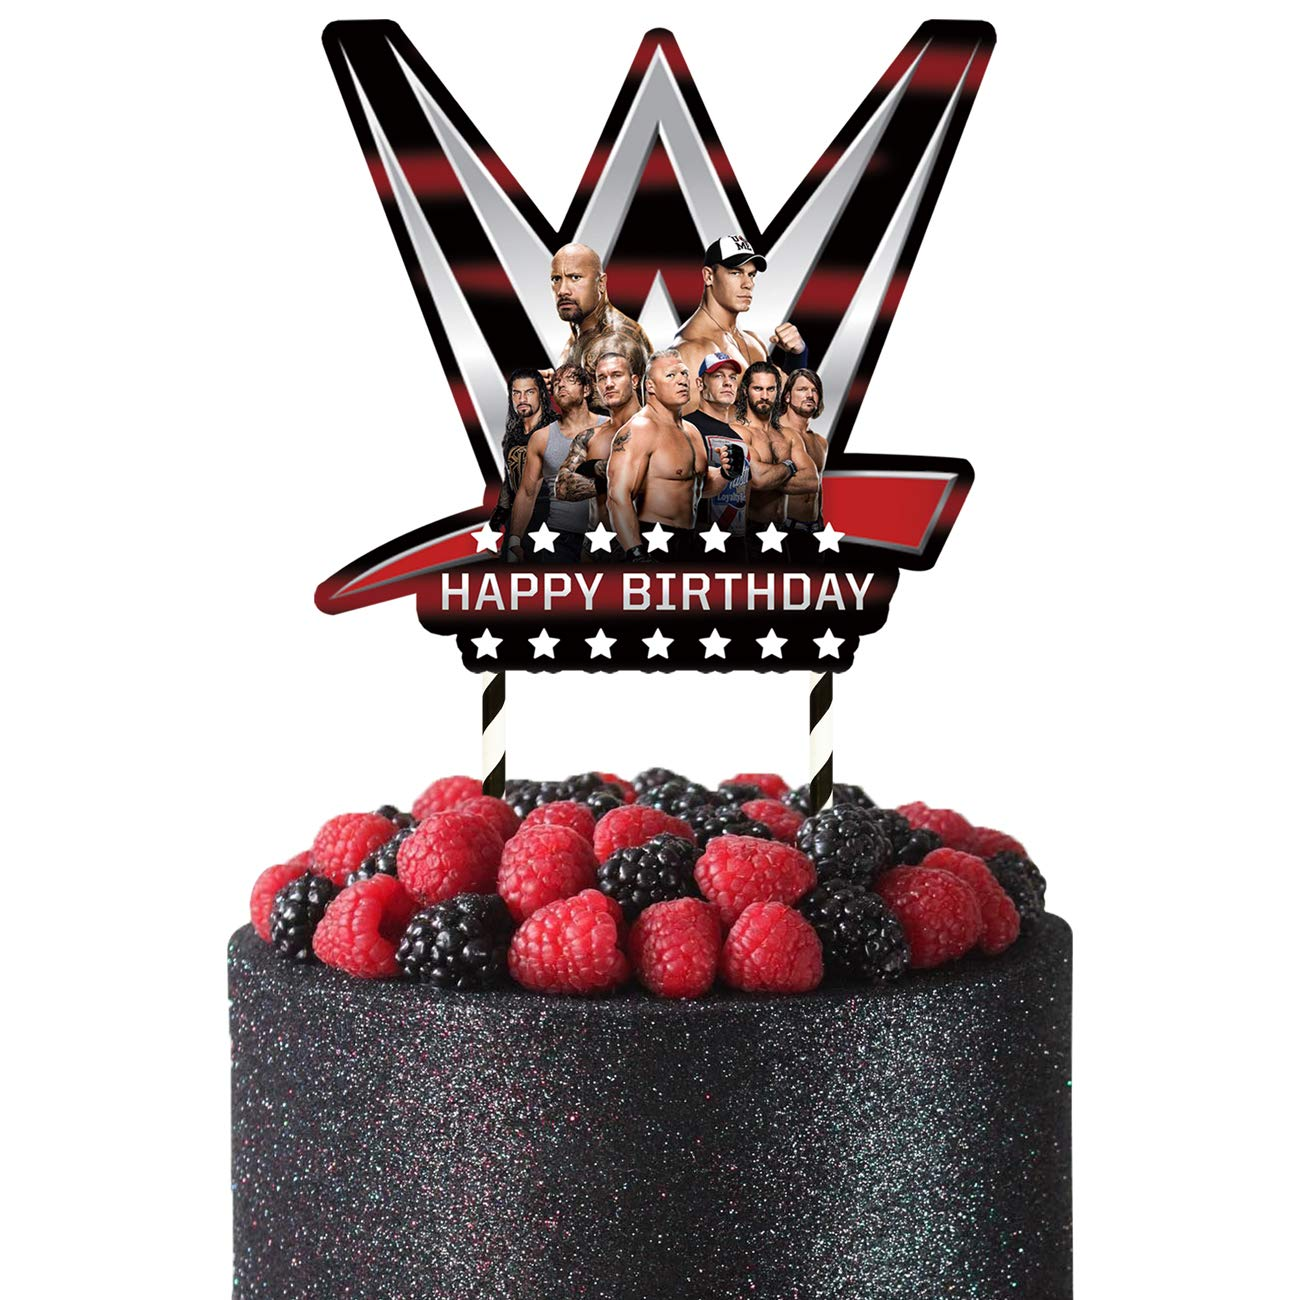 Groovy Wwe Cake Topper Decorations Birthday Party Wwe Theme For Boys 1 Funny Birthday Cards Online Alyptdamsfinfo